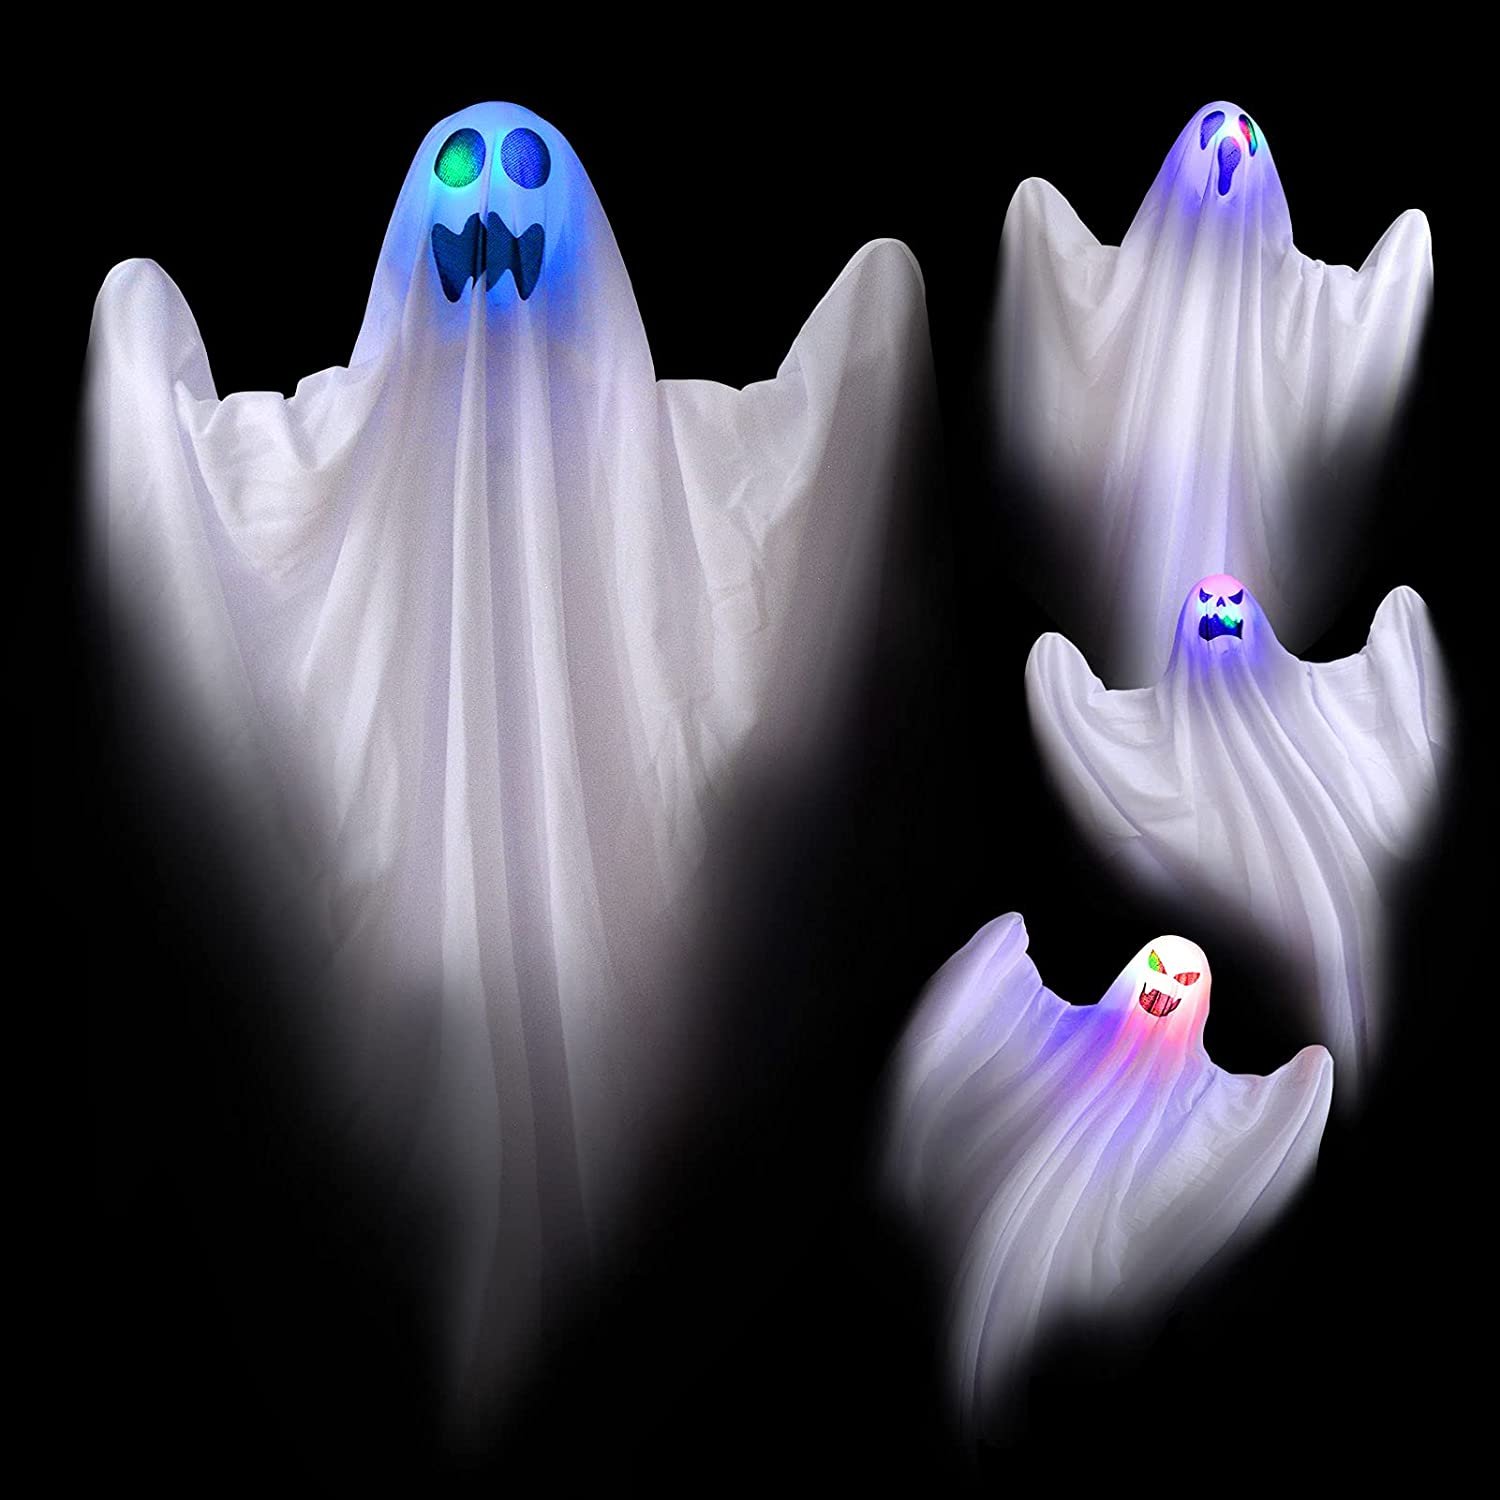 JPXH 4 Pack Light Up White Hanging Ghosts Outdoor Color Changing Ghost Halloween Decorations for Trees